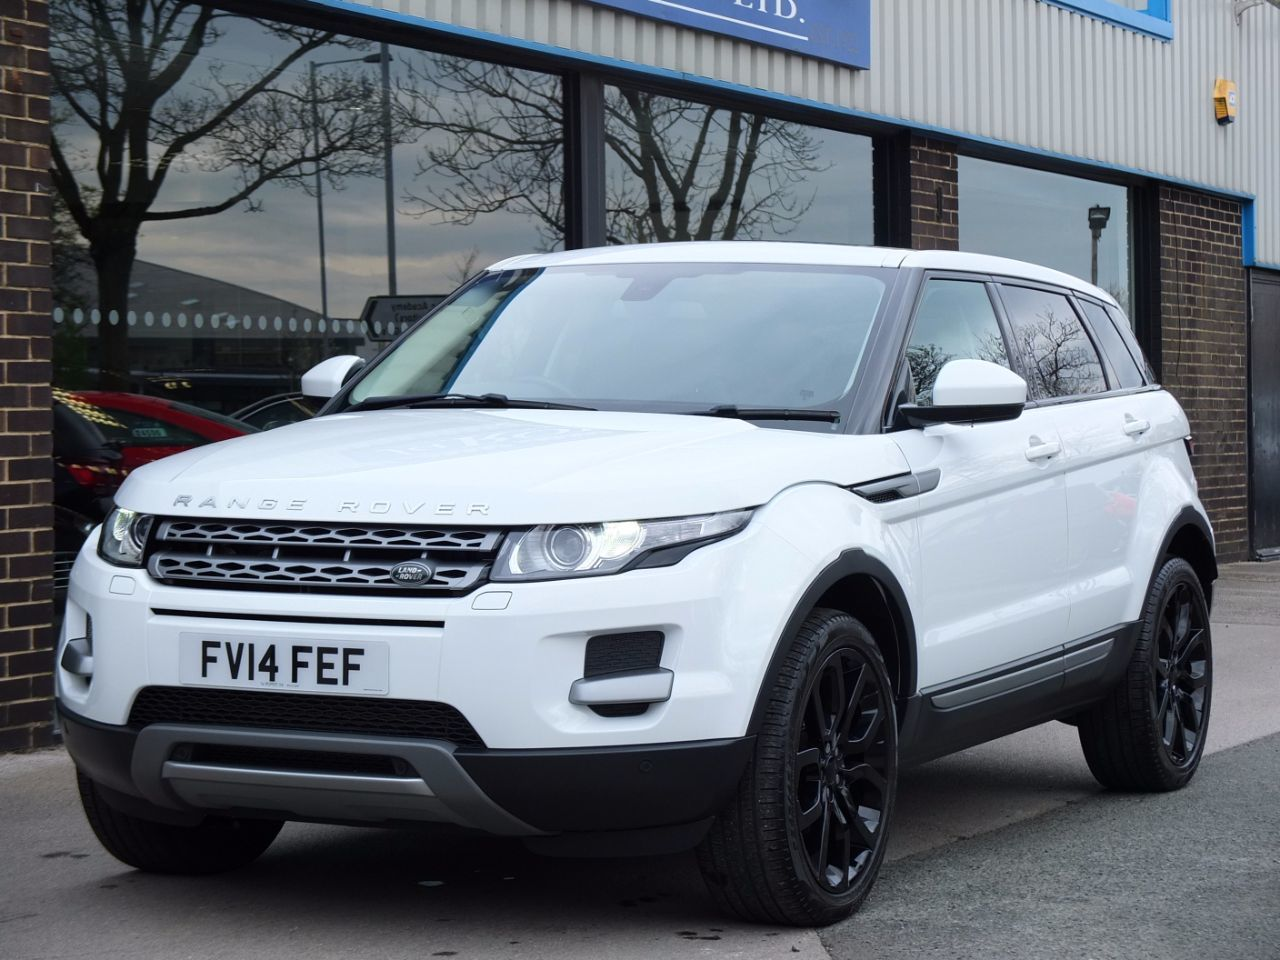 Land Rover Range Rover Evoque 2.2 SD4 Pure Tech 5 door Auto [9] [Tech Pack] Estate Diesel Fuji WhiteLand Rover Range Rover Evoque 2.2 SD4 Pure Tech 5 door Auto [9] [Tech Pack] Estate Diesel Fuji White at fa Roper Ltd Bradford